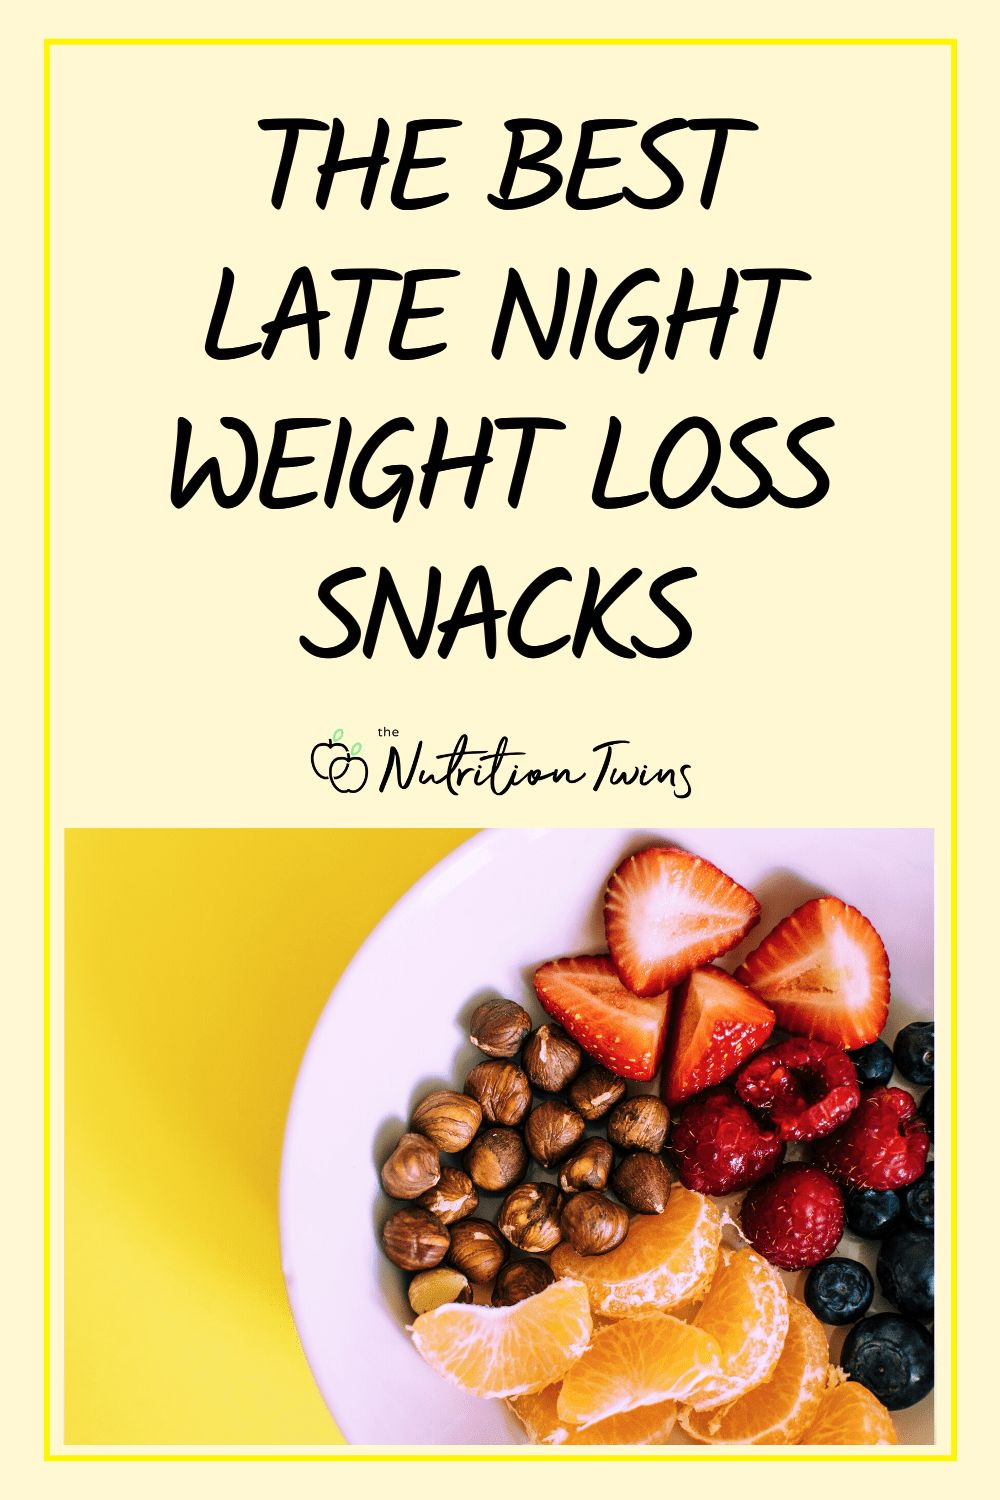 The Best Late Night Weight Loss Snacks. These flat belly snacks are the perfect healthy snacks for your flat belly workout plan because they are filling and low calorie. #flatbellysnacks #healthysnacks #weightloss For MORE RECIPES, fitness & nutrition tips please SIGN UP for our FREE NEWSLETTER www.NutritionTwins.com